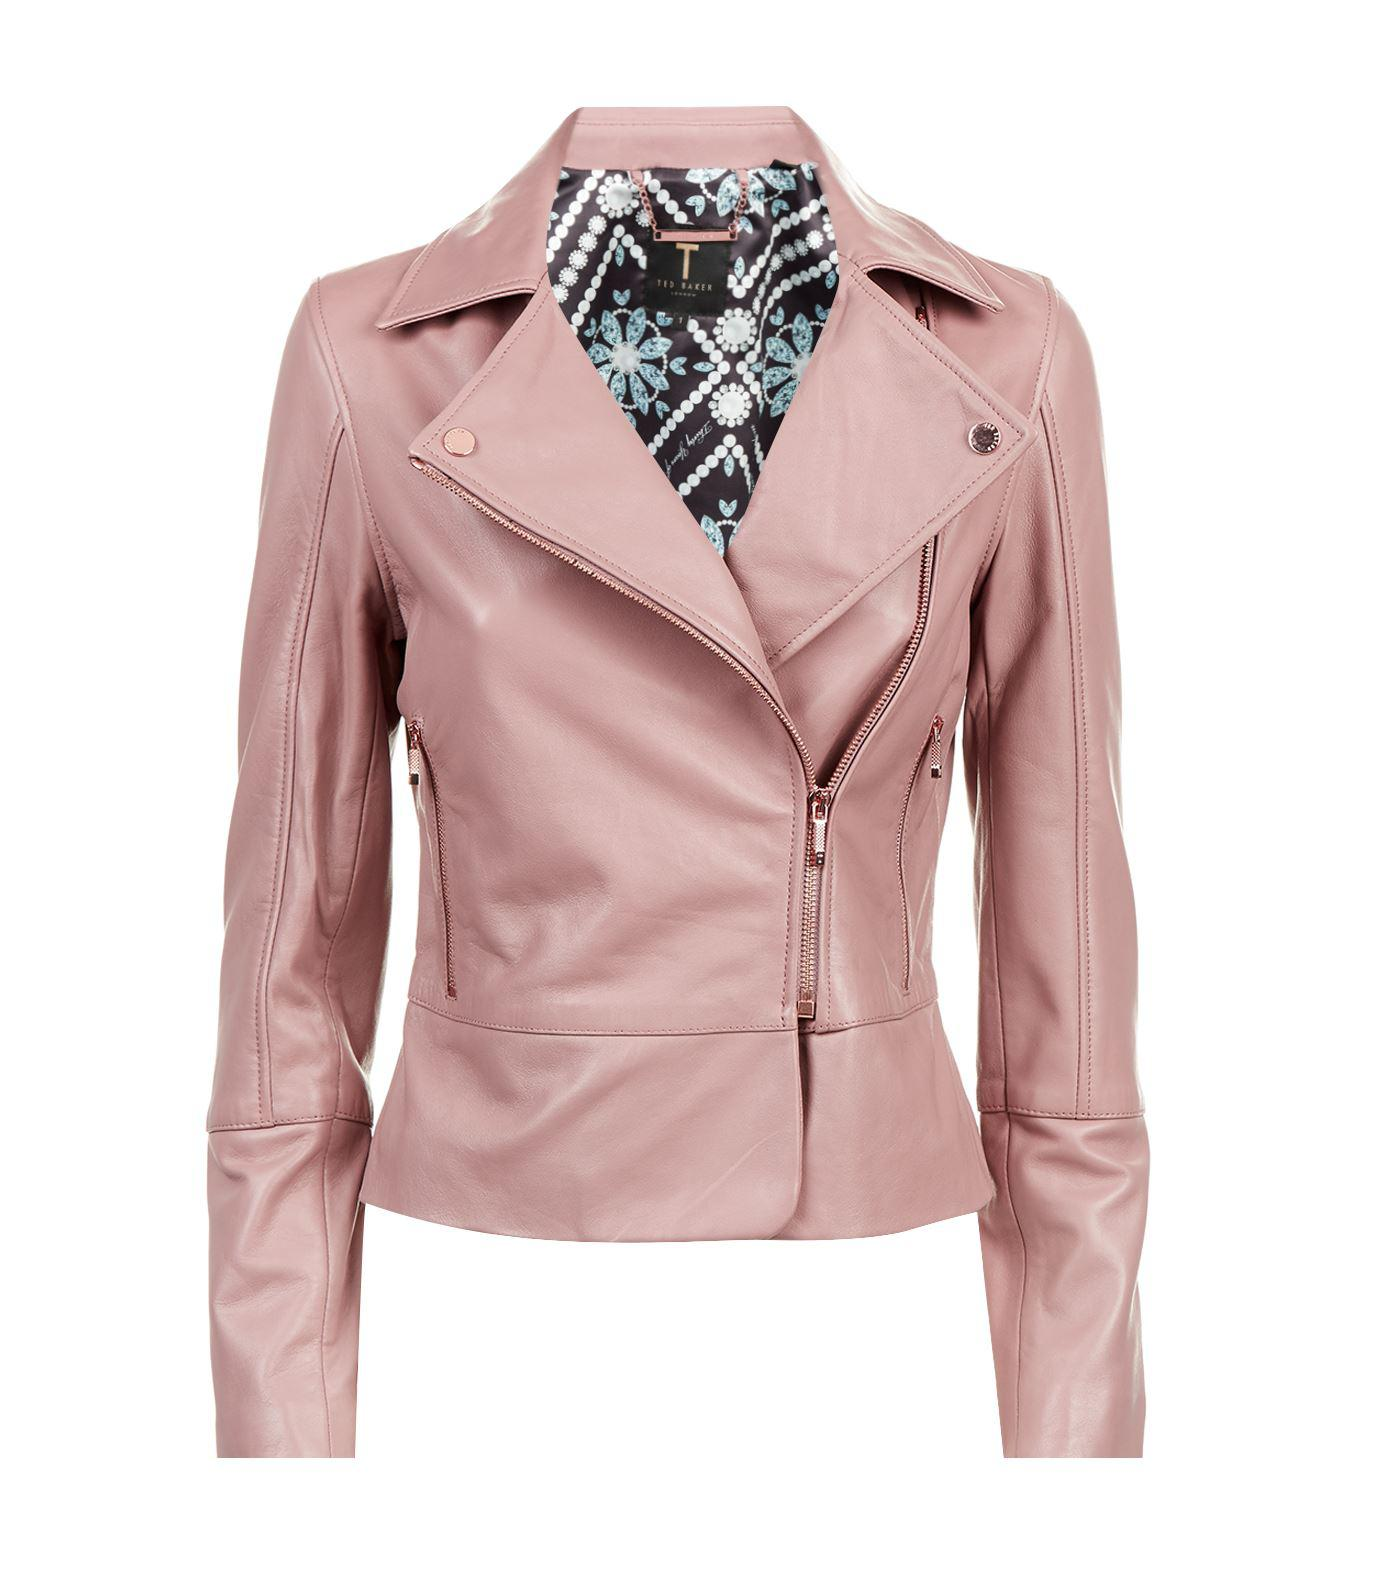 9dab833b9 Ted Baker Leather Jacket in Pink - Lyst